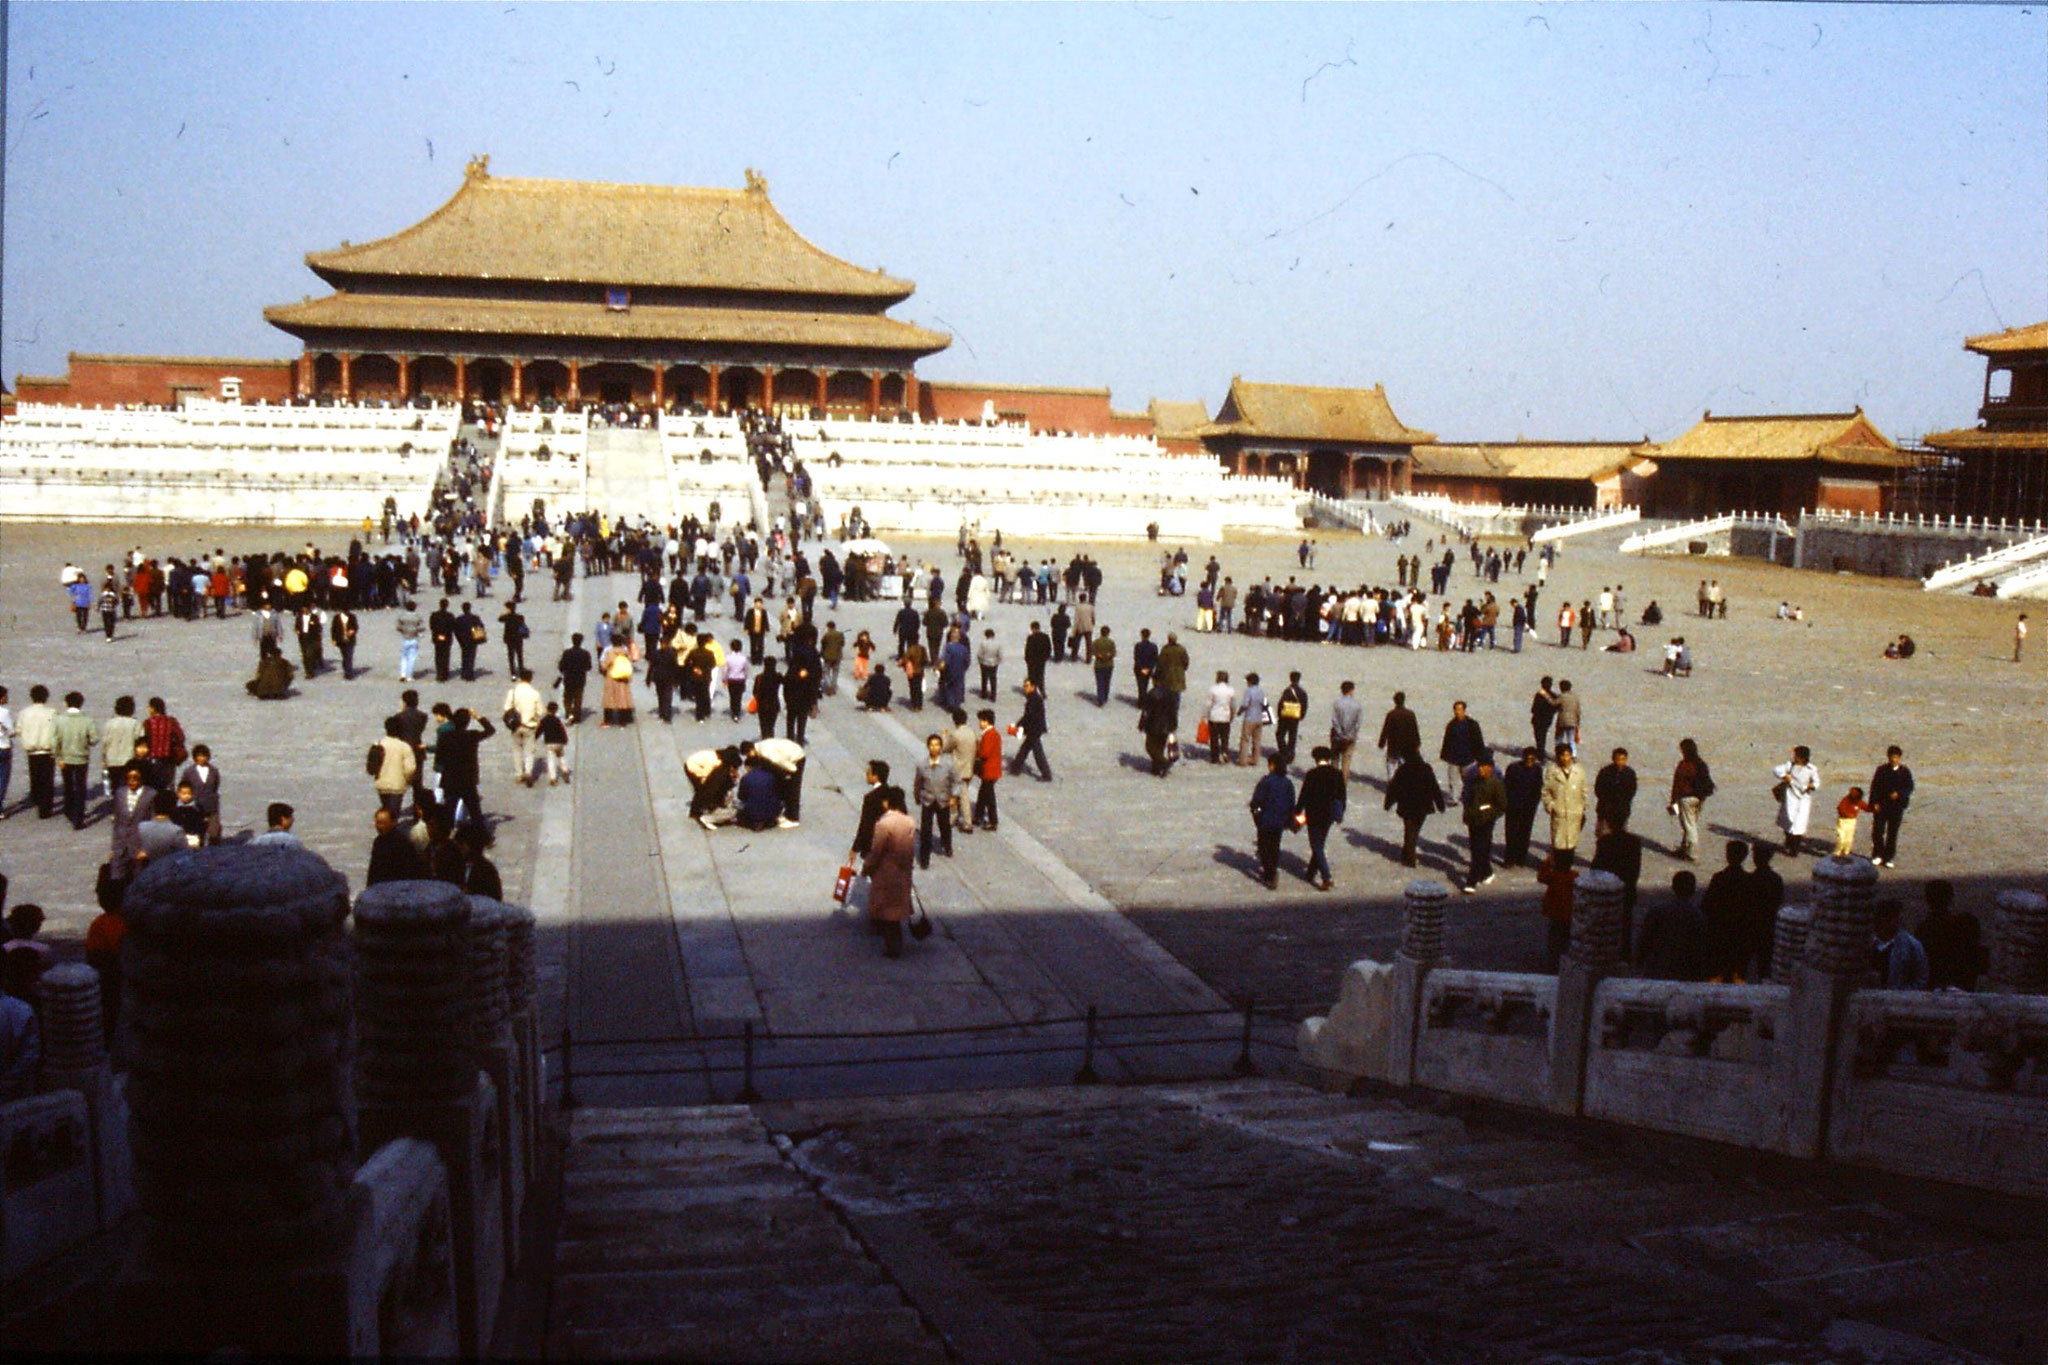 30/10/1988: 28: Forbidden City, Hall of Supreme Harmony